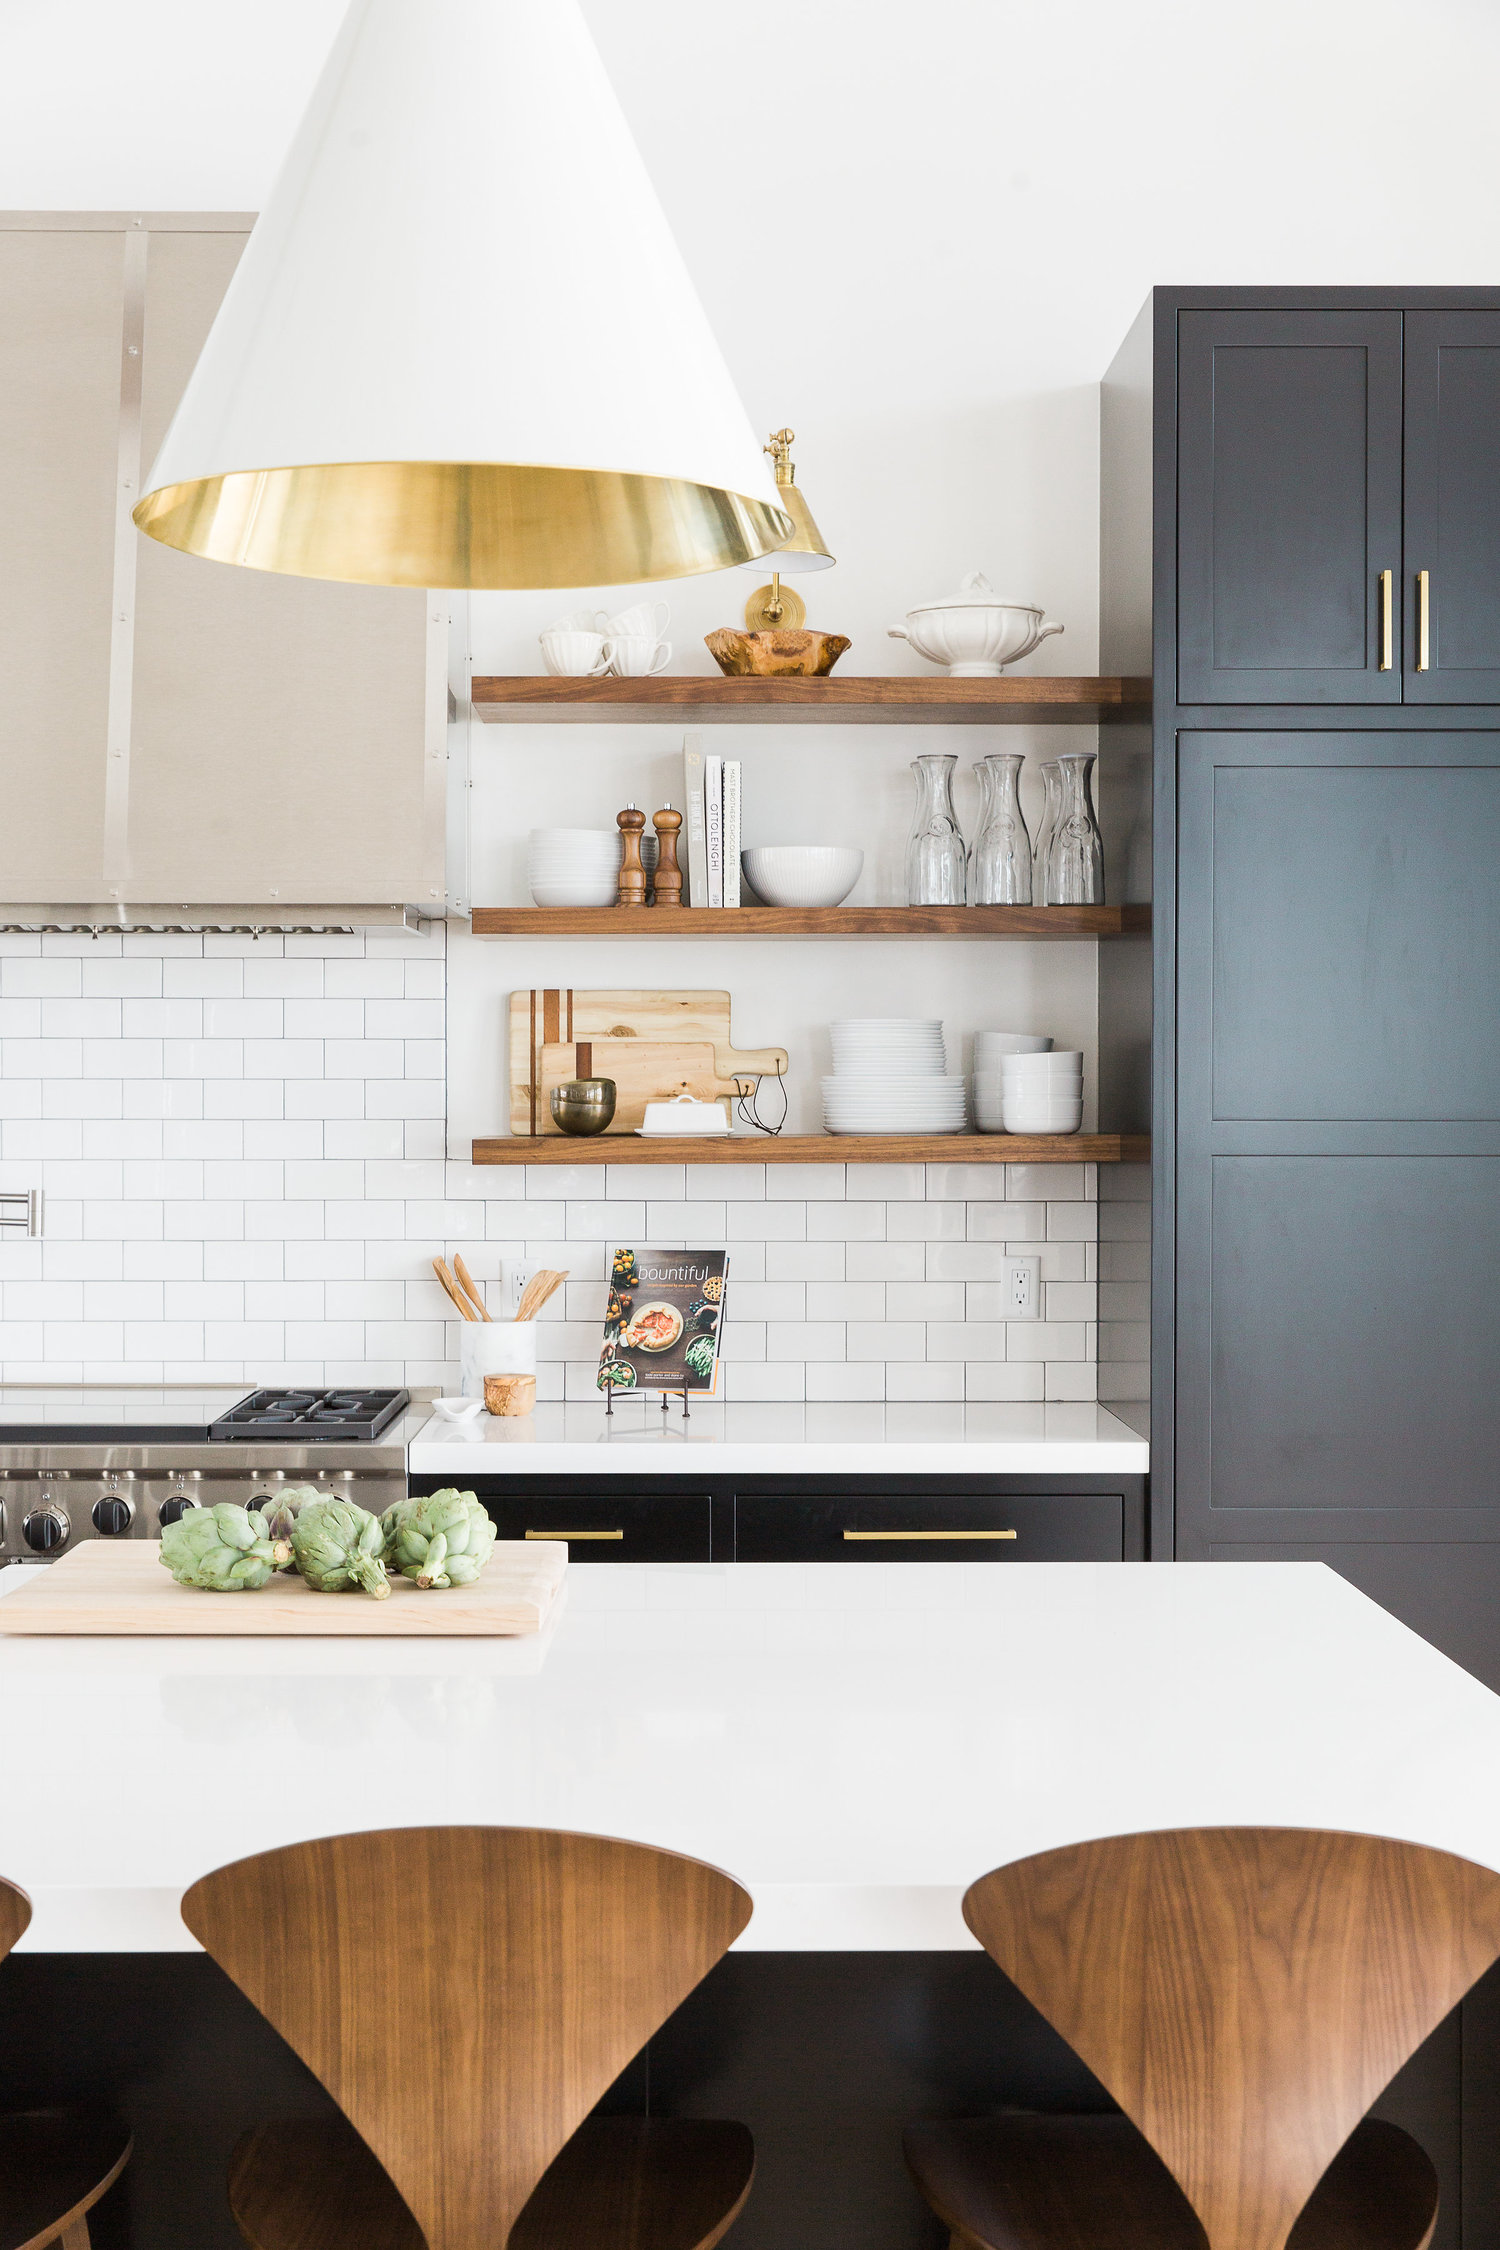 White and gold light fixture of kitchen island